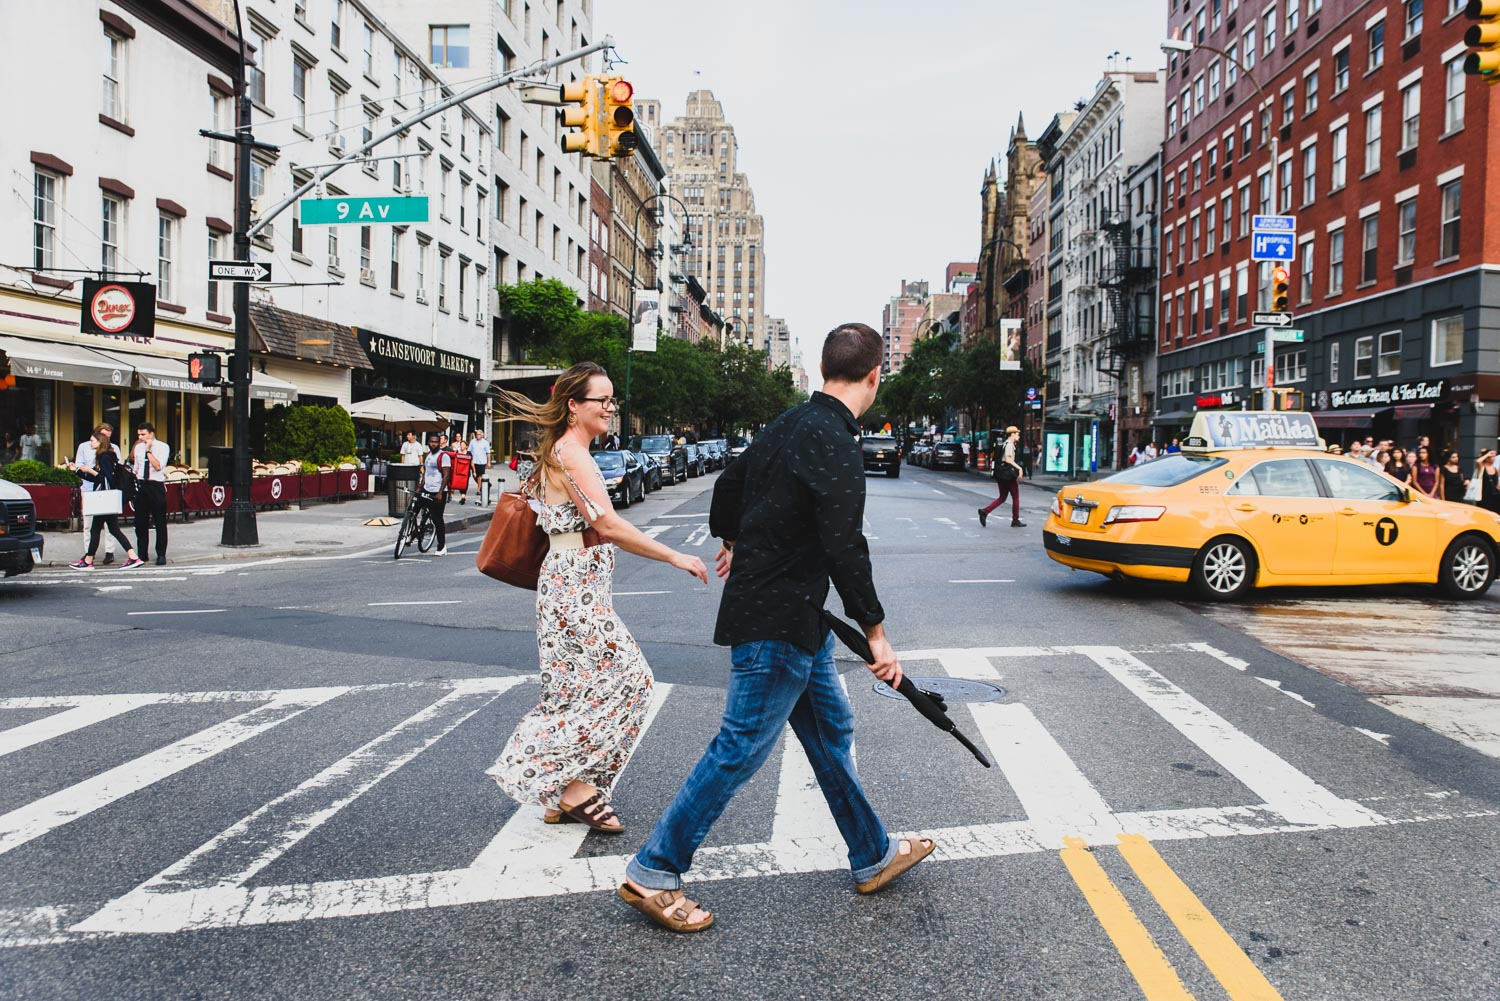 A couple crosses the street in Chelsea, Manhattan.